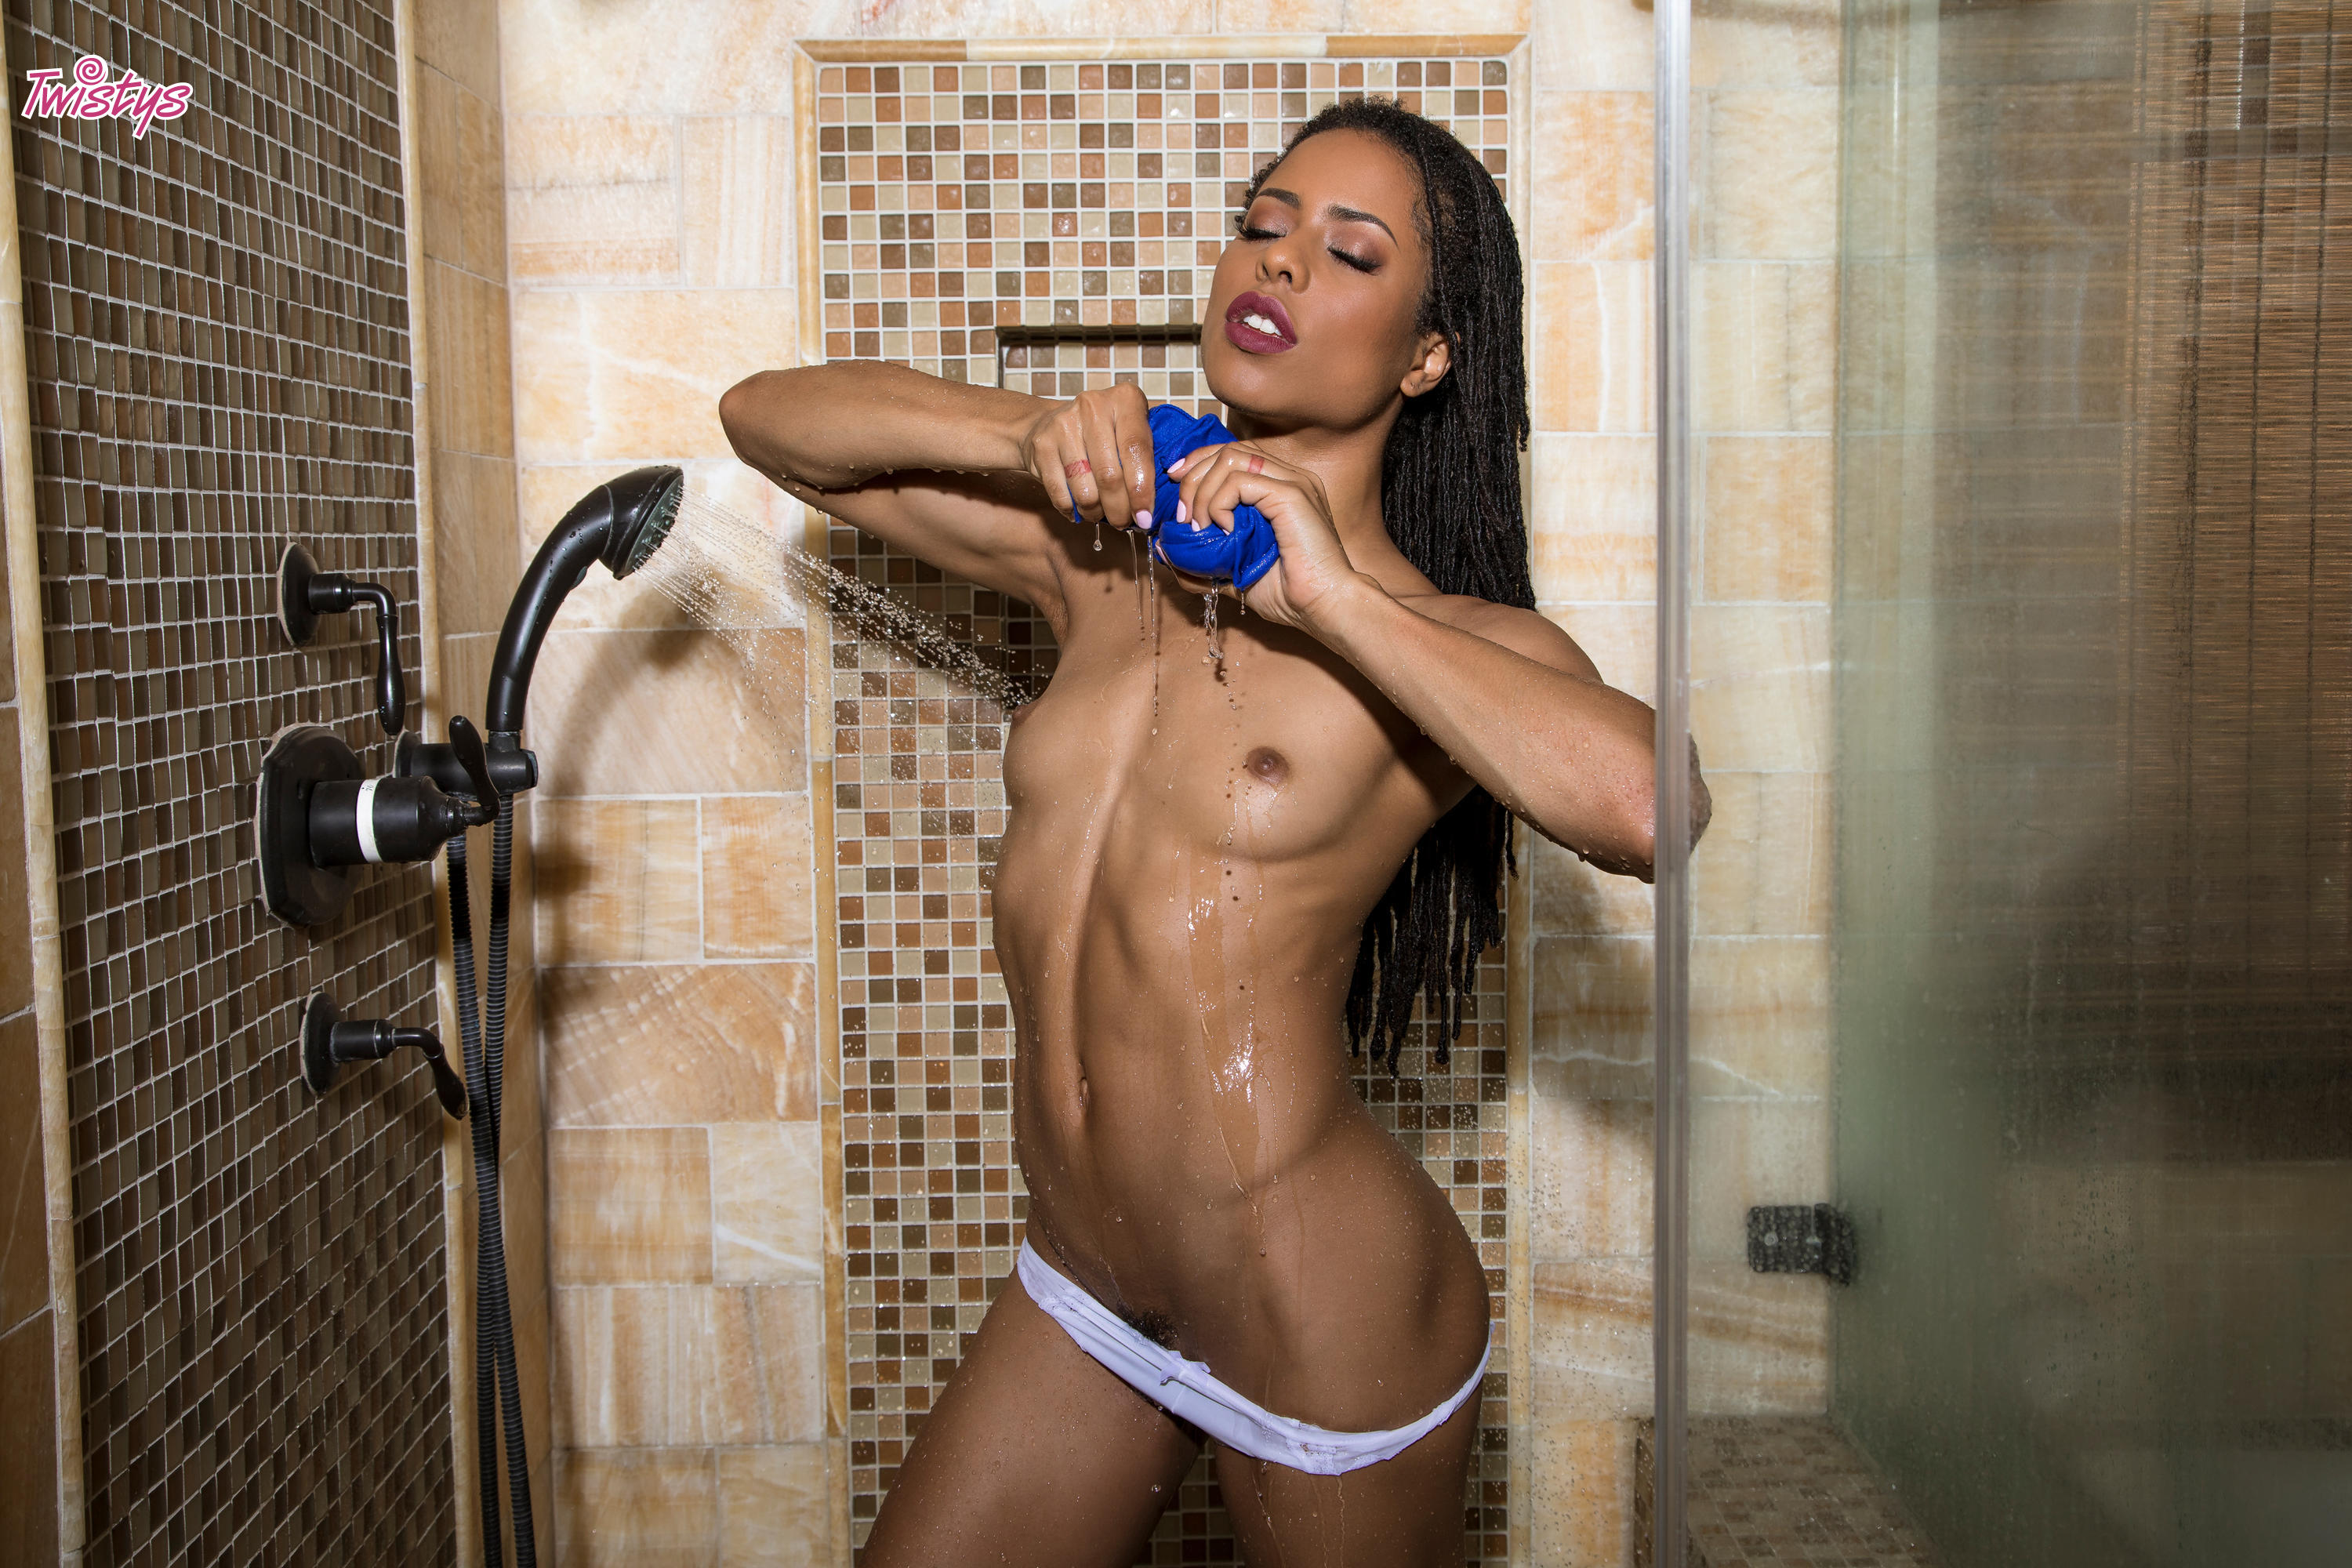 Twistys 'Drip Drip Drop' starring Kira Noir (Photo 15)